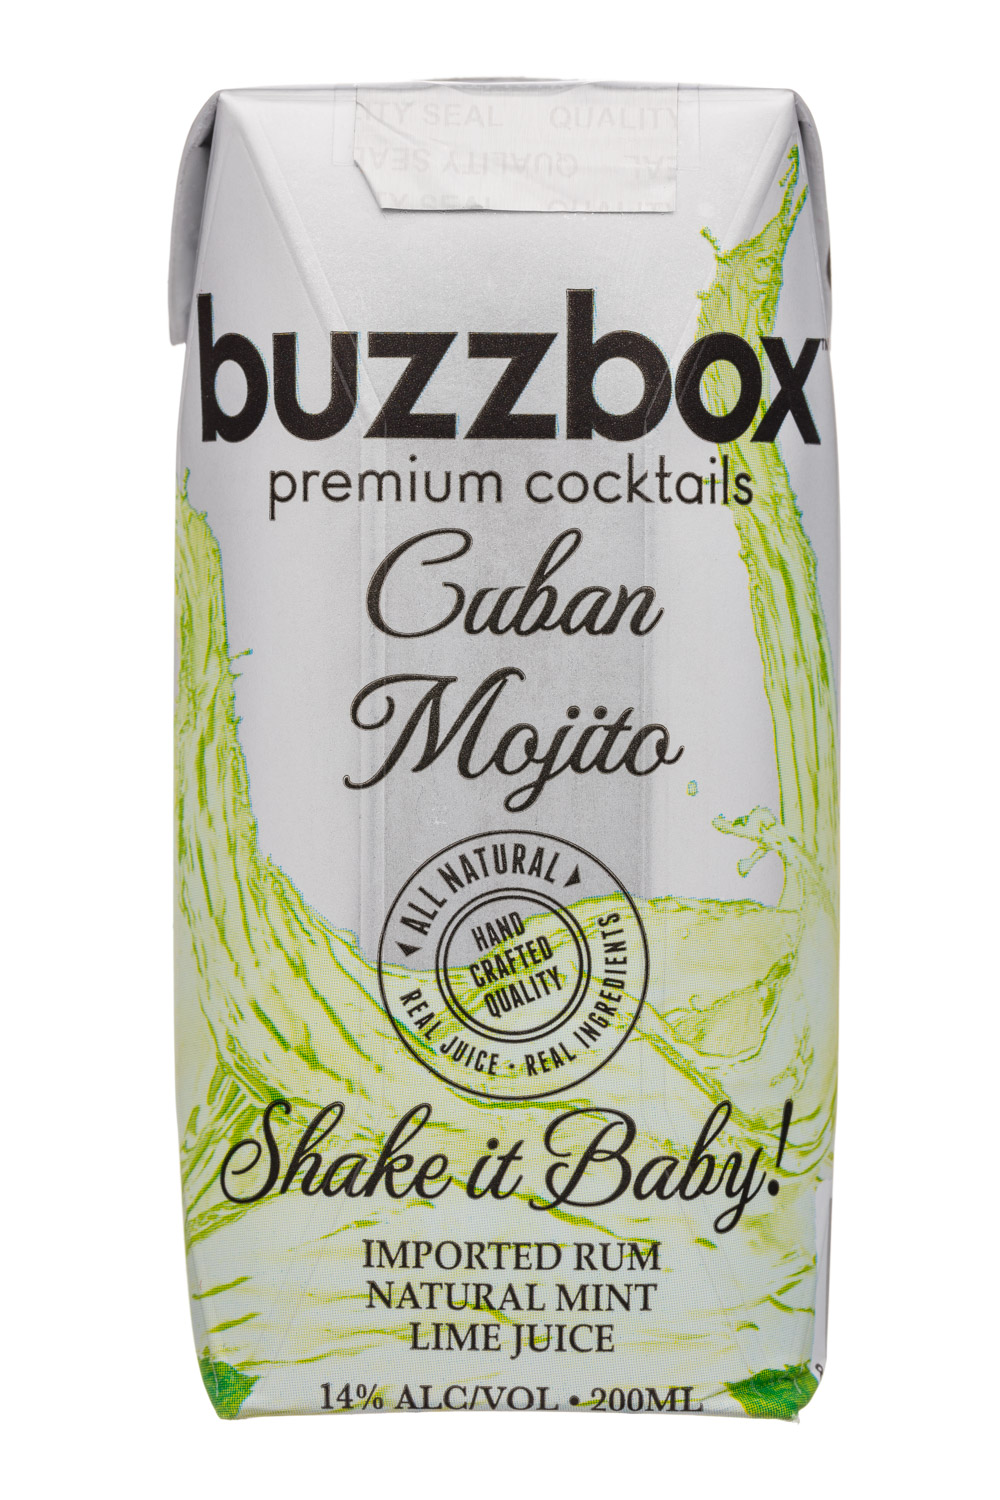 BuzzBox: Buzzbox-200ml-Cocktail-CubanMojito